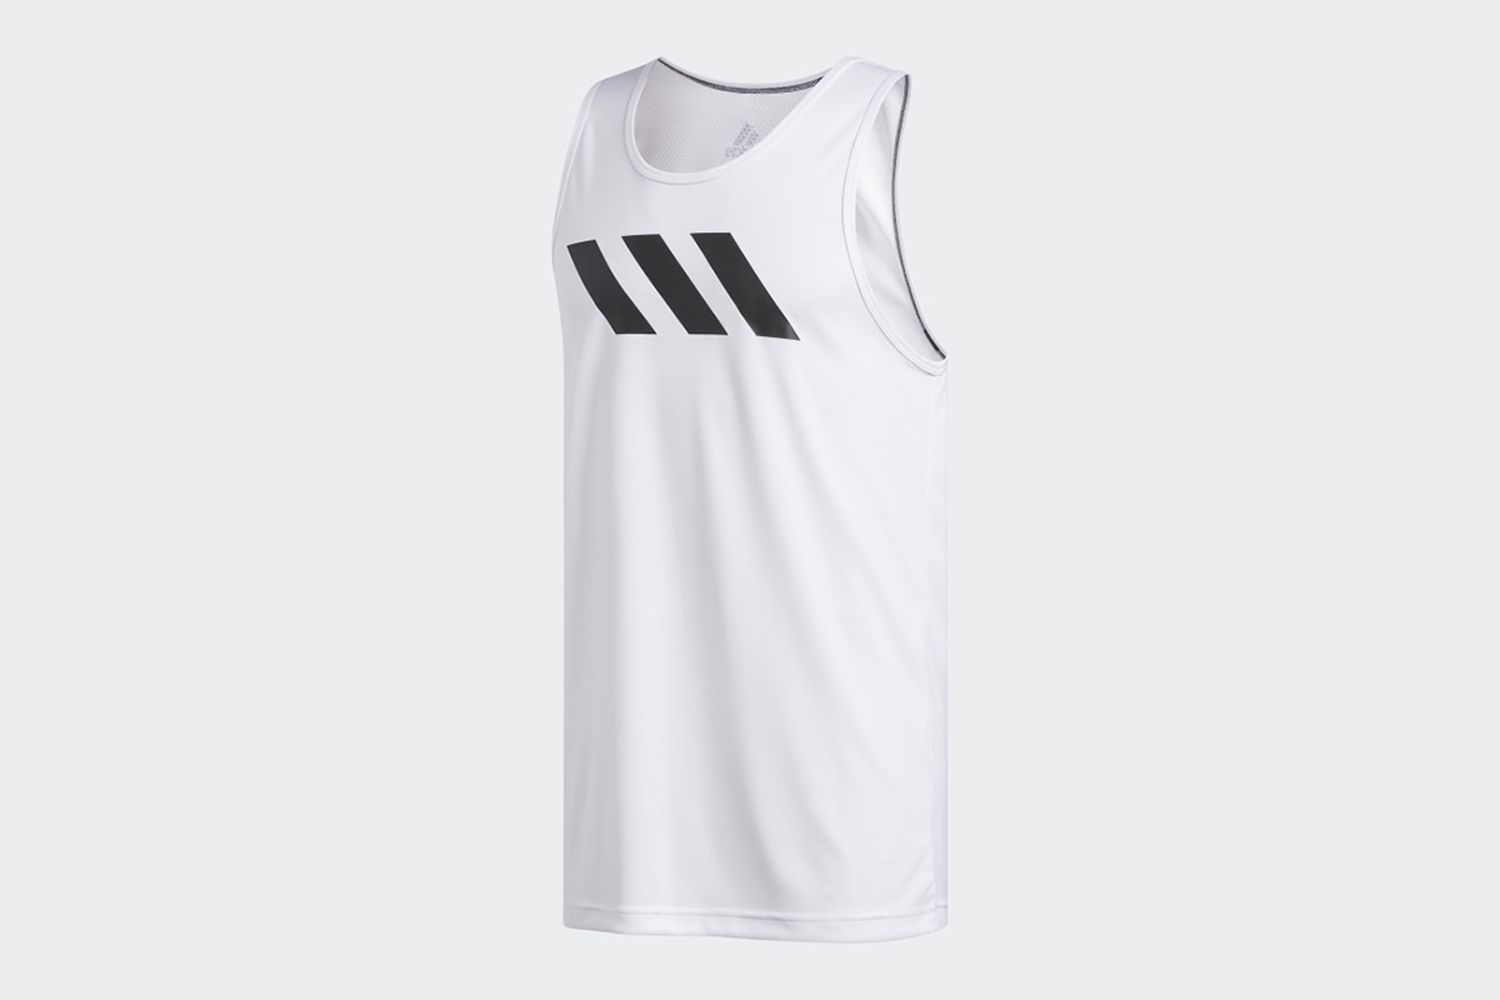 Sport 3-Stripes Tank Top